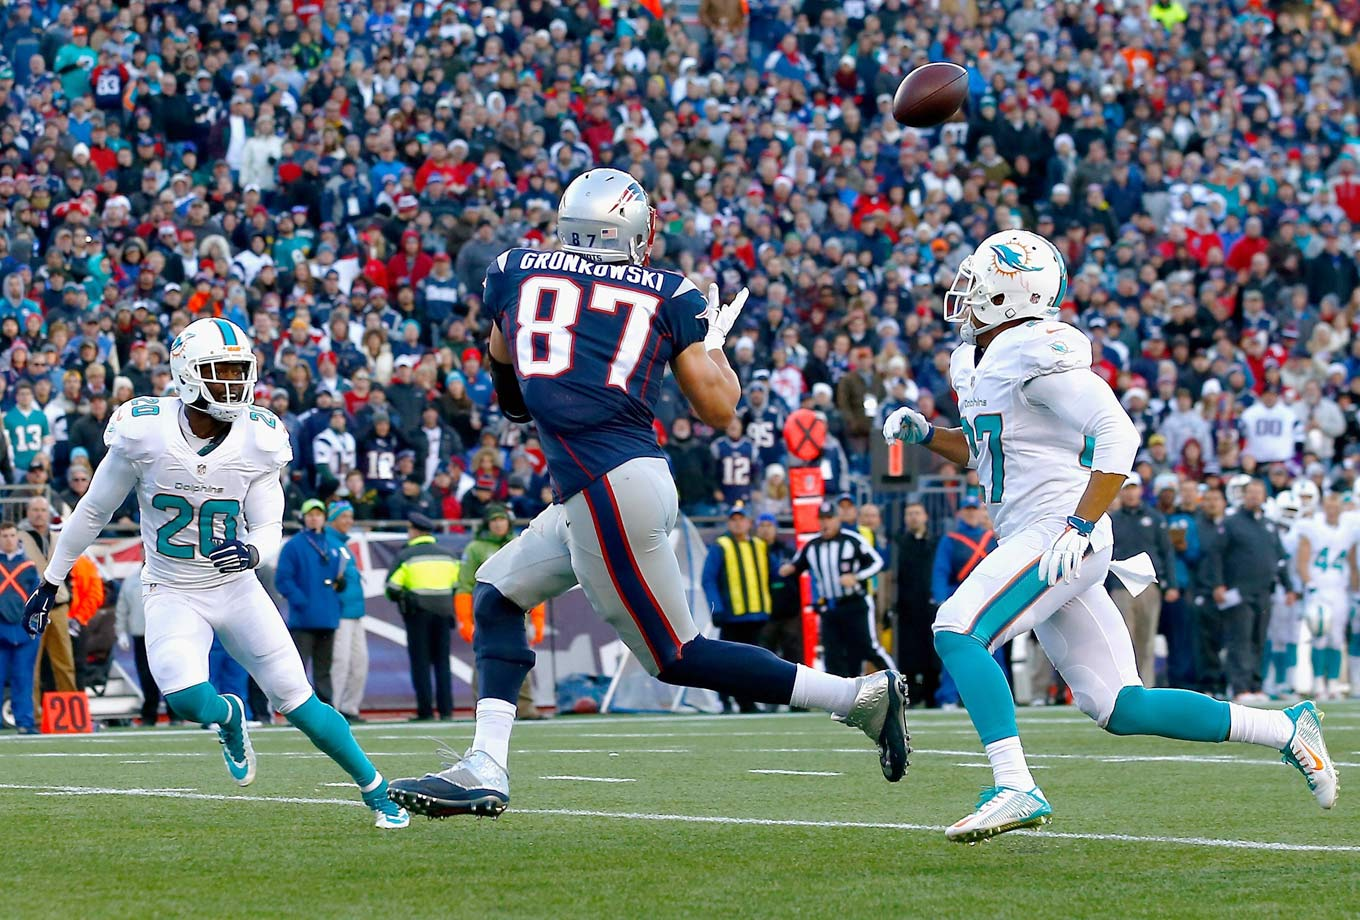 New England avenged their first loss of the season with a 41-13 shellacking of Miami, clinching the AFC East in the process. The Patriots slammed the Dolphins with 24 points in the third quarter alone, the highest-scoring third quarter in team history. Gronkowski's three catches were good for 96 yards and a touchdown.